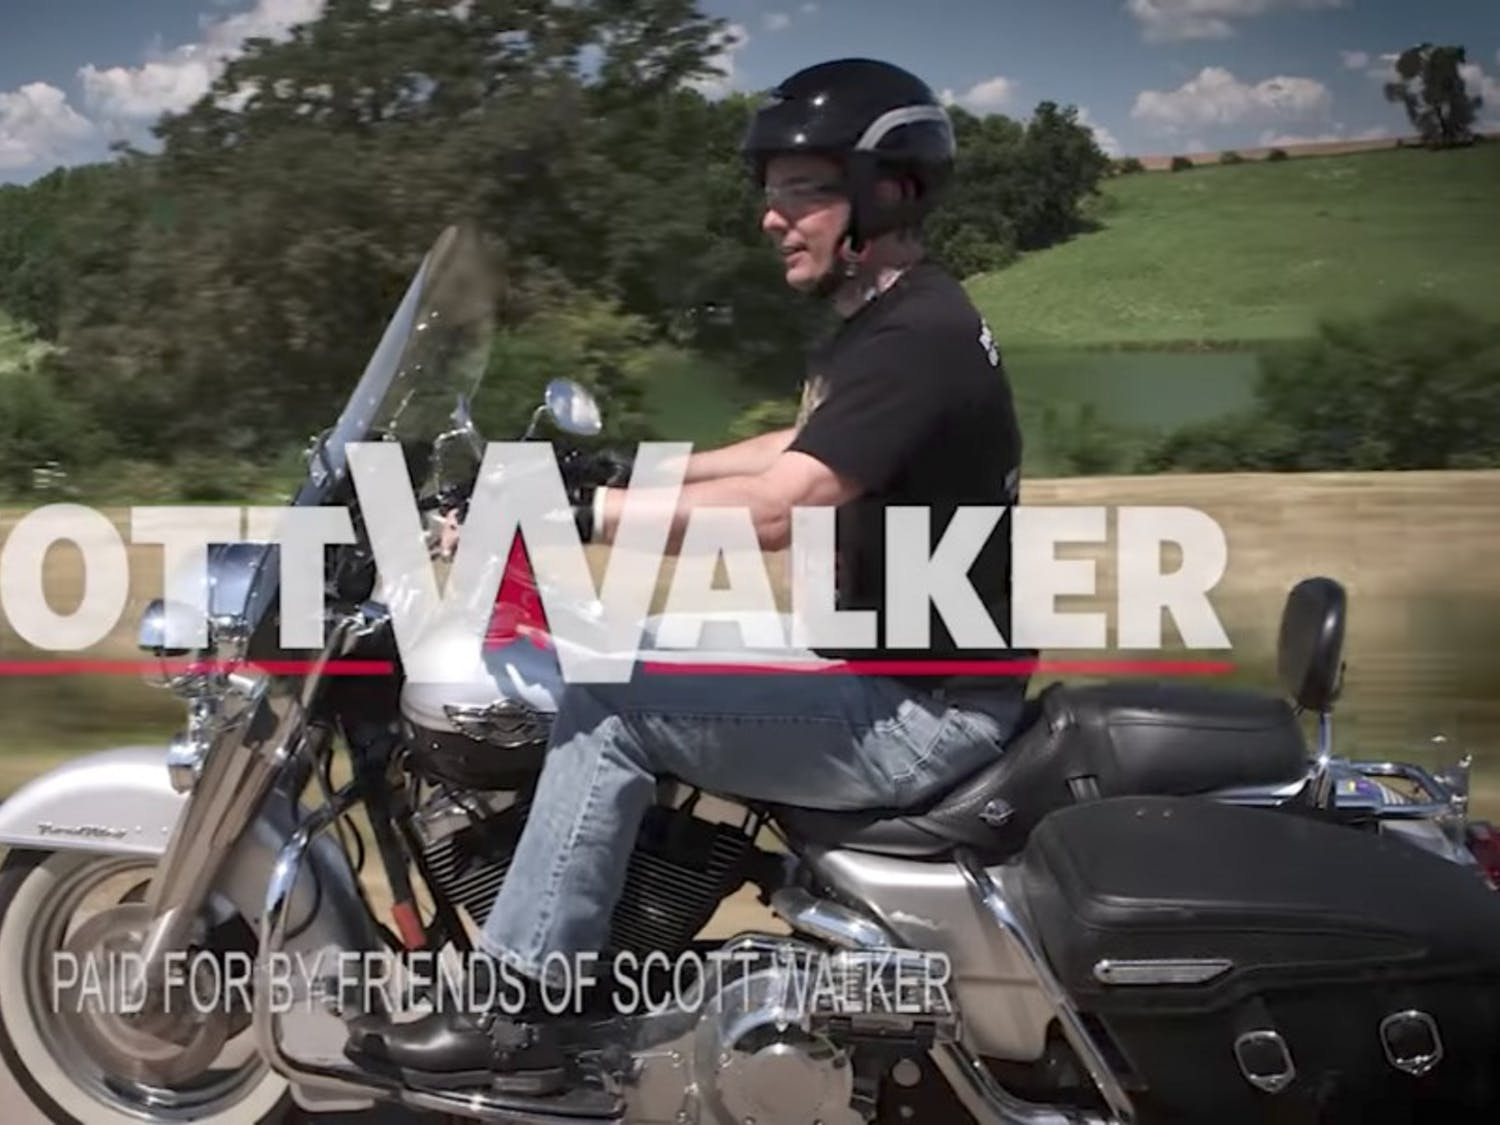 Gov. Scott Walker released a campaign video Wednesday ahead a formal re-election announcement.